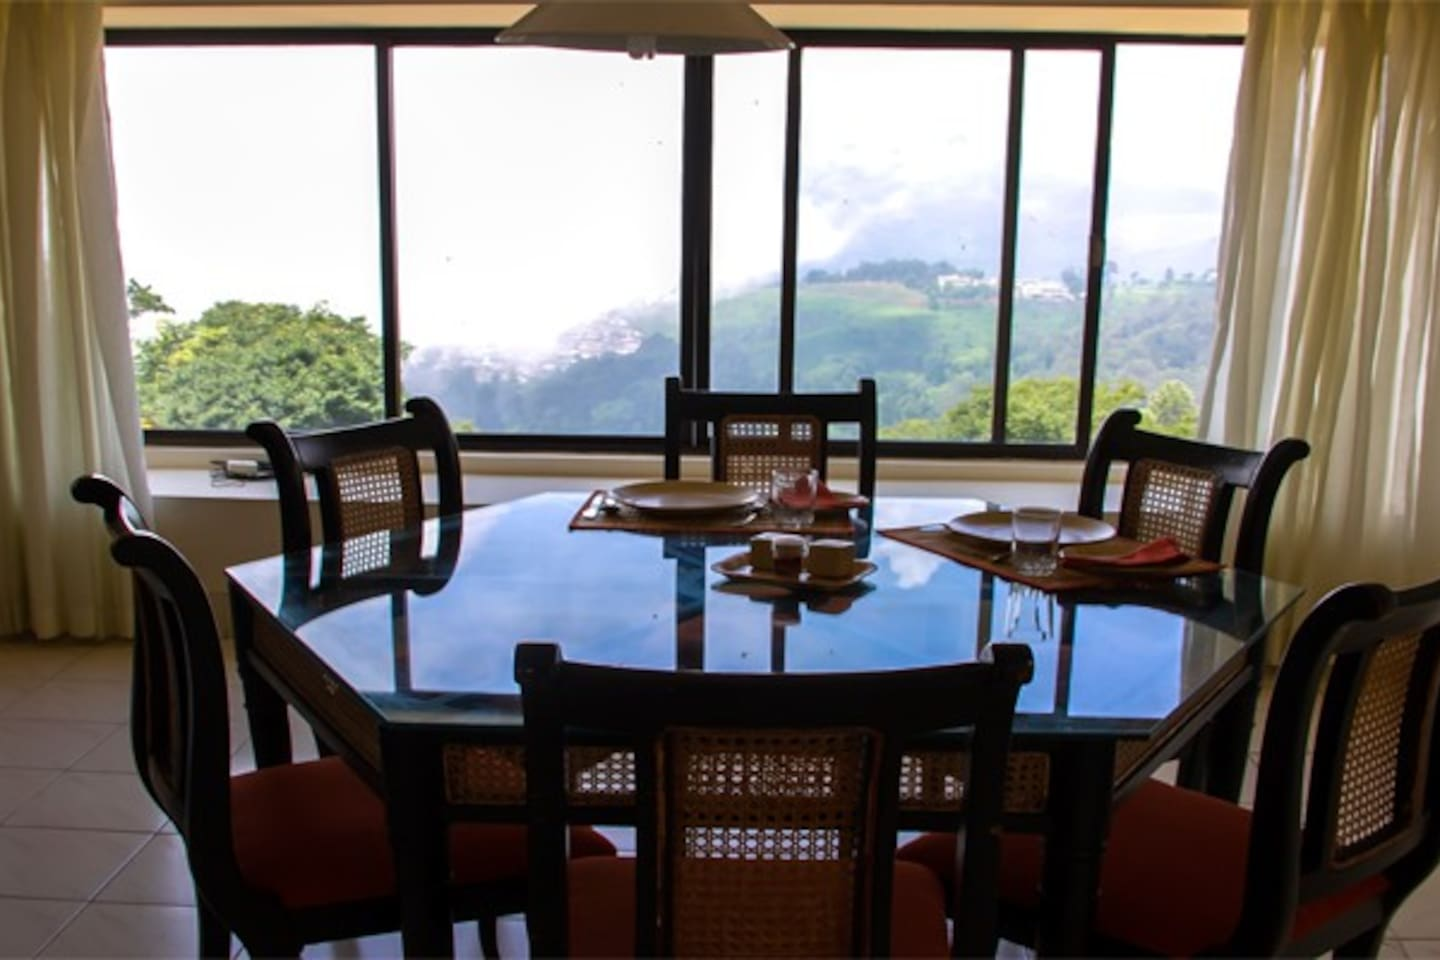 Dining Room with a stunning view of the surrounding hills